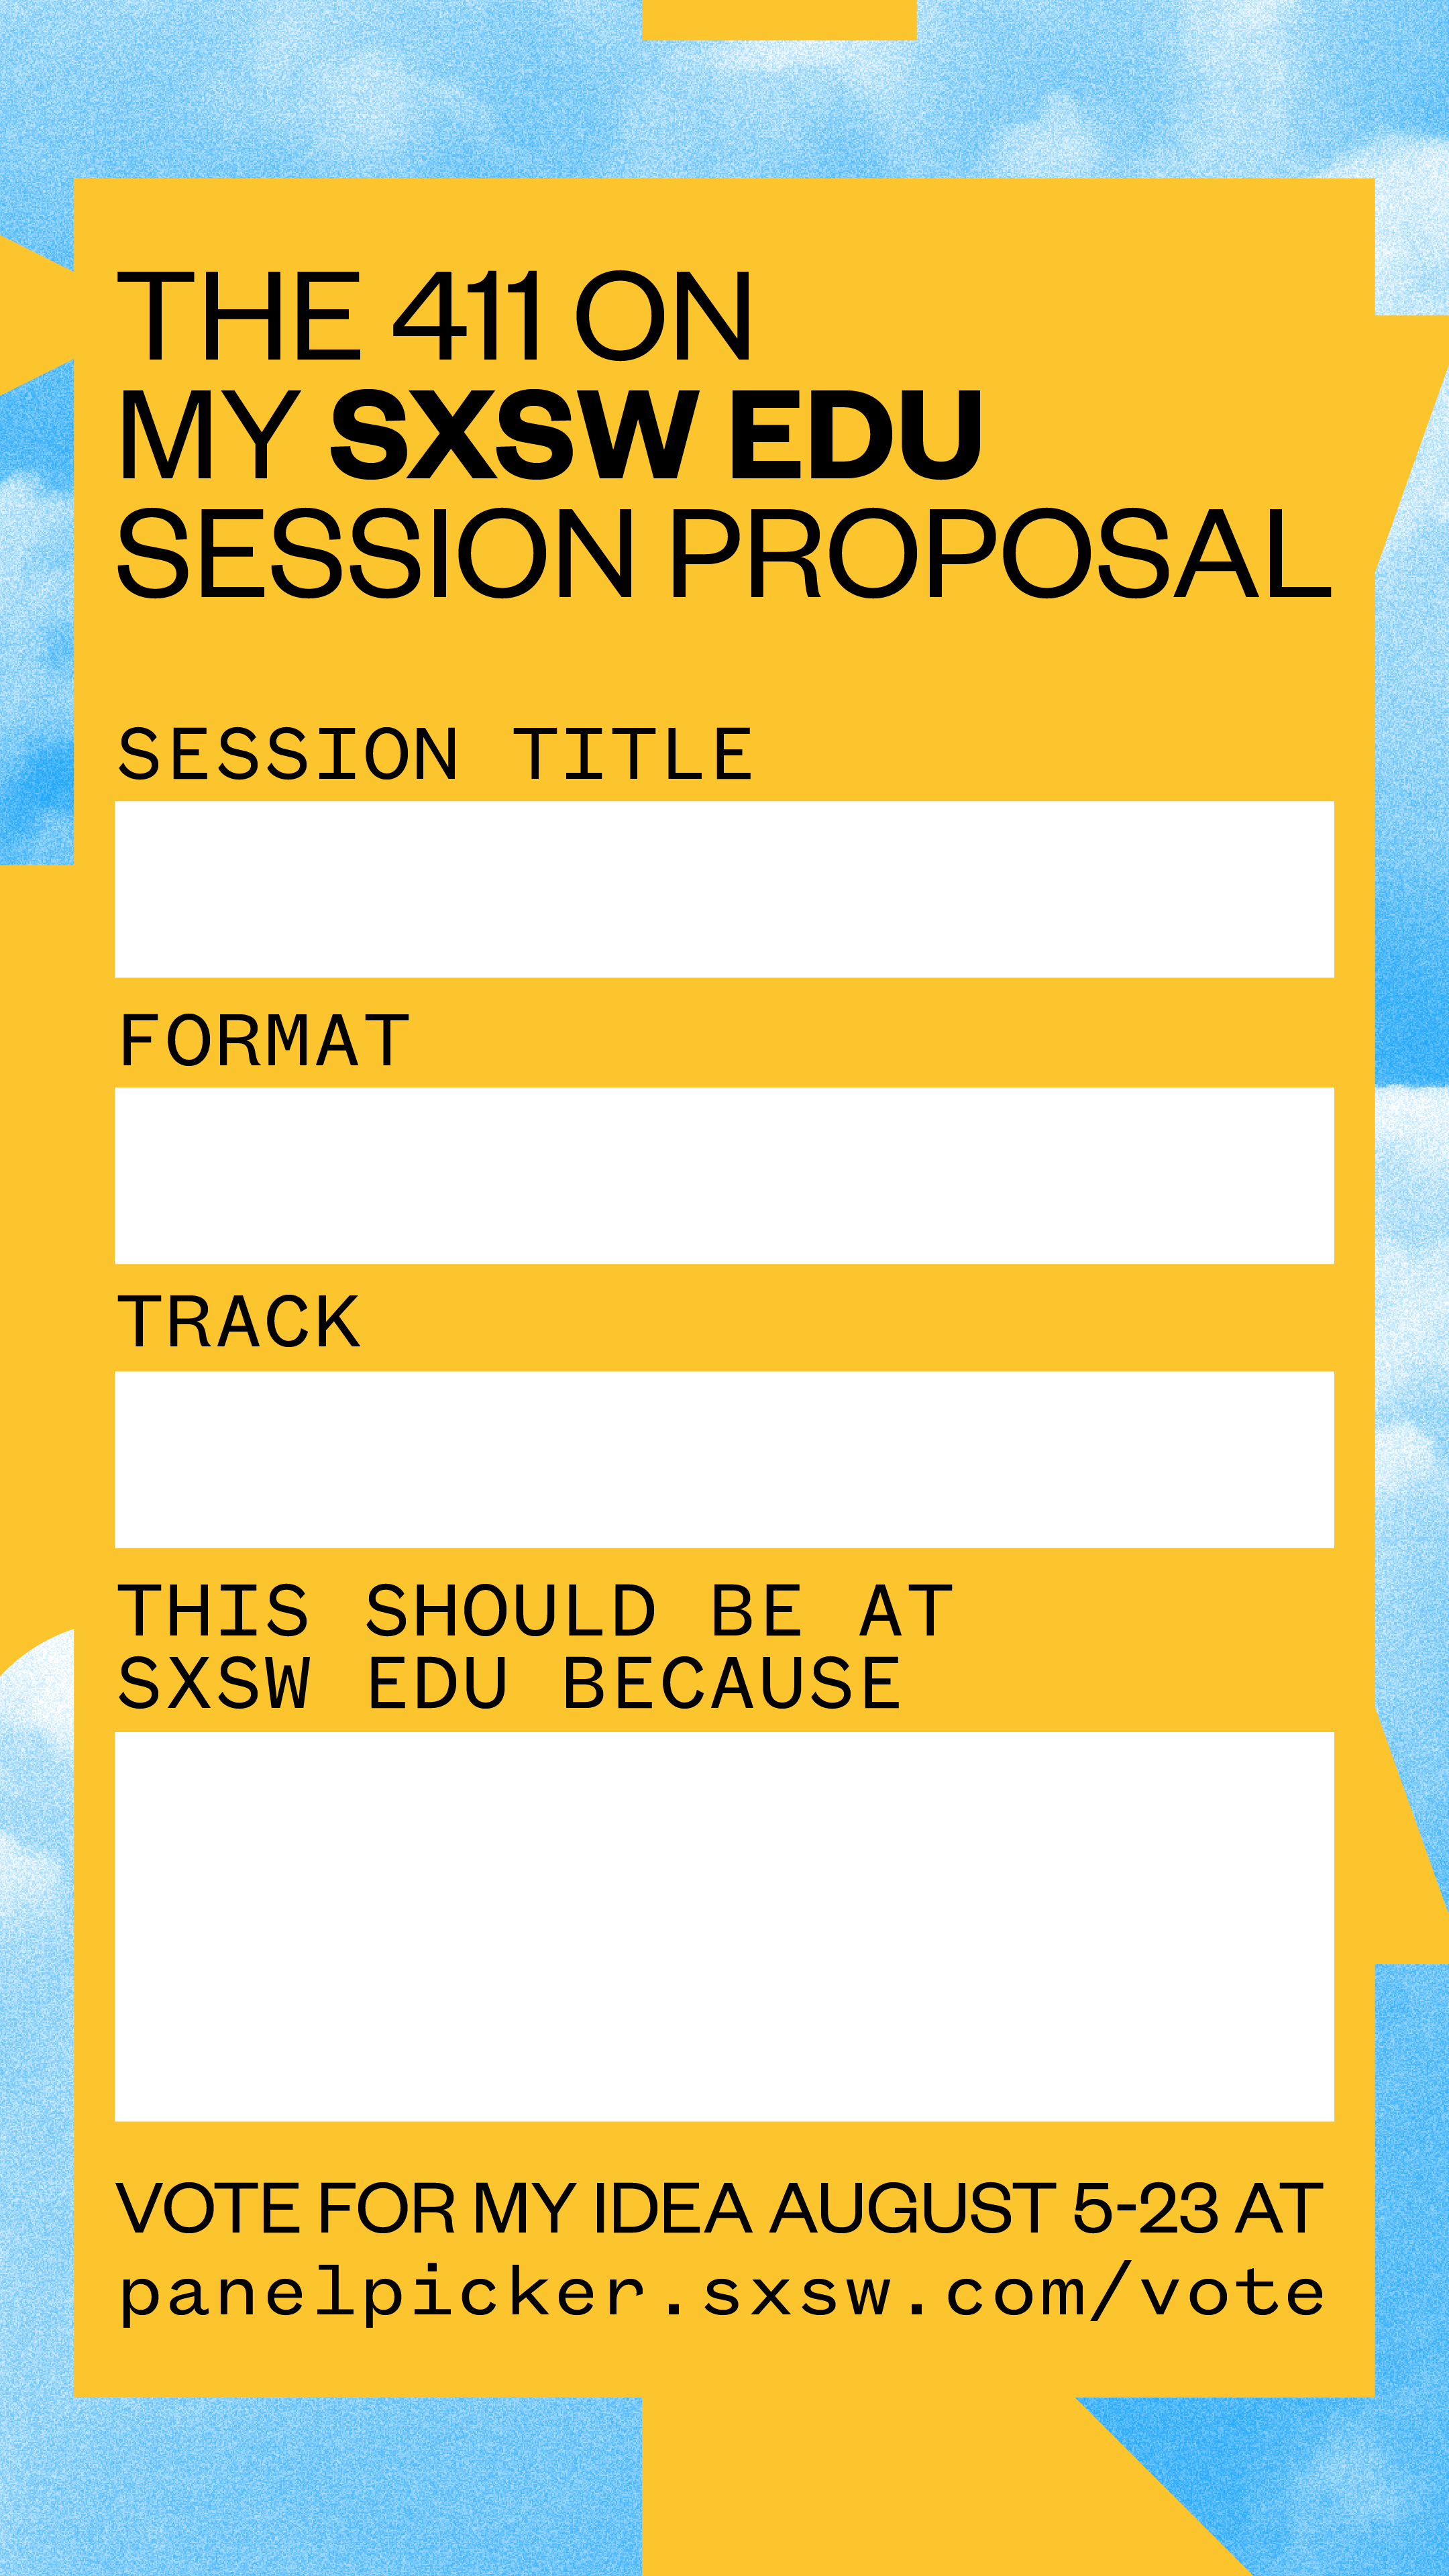 SXSW EDU 2020 PanelPicker Fill in the blank Instagram story image.